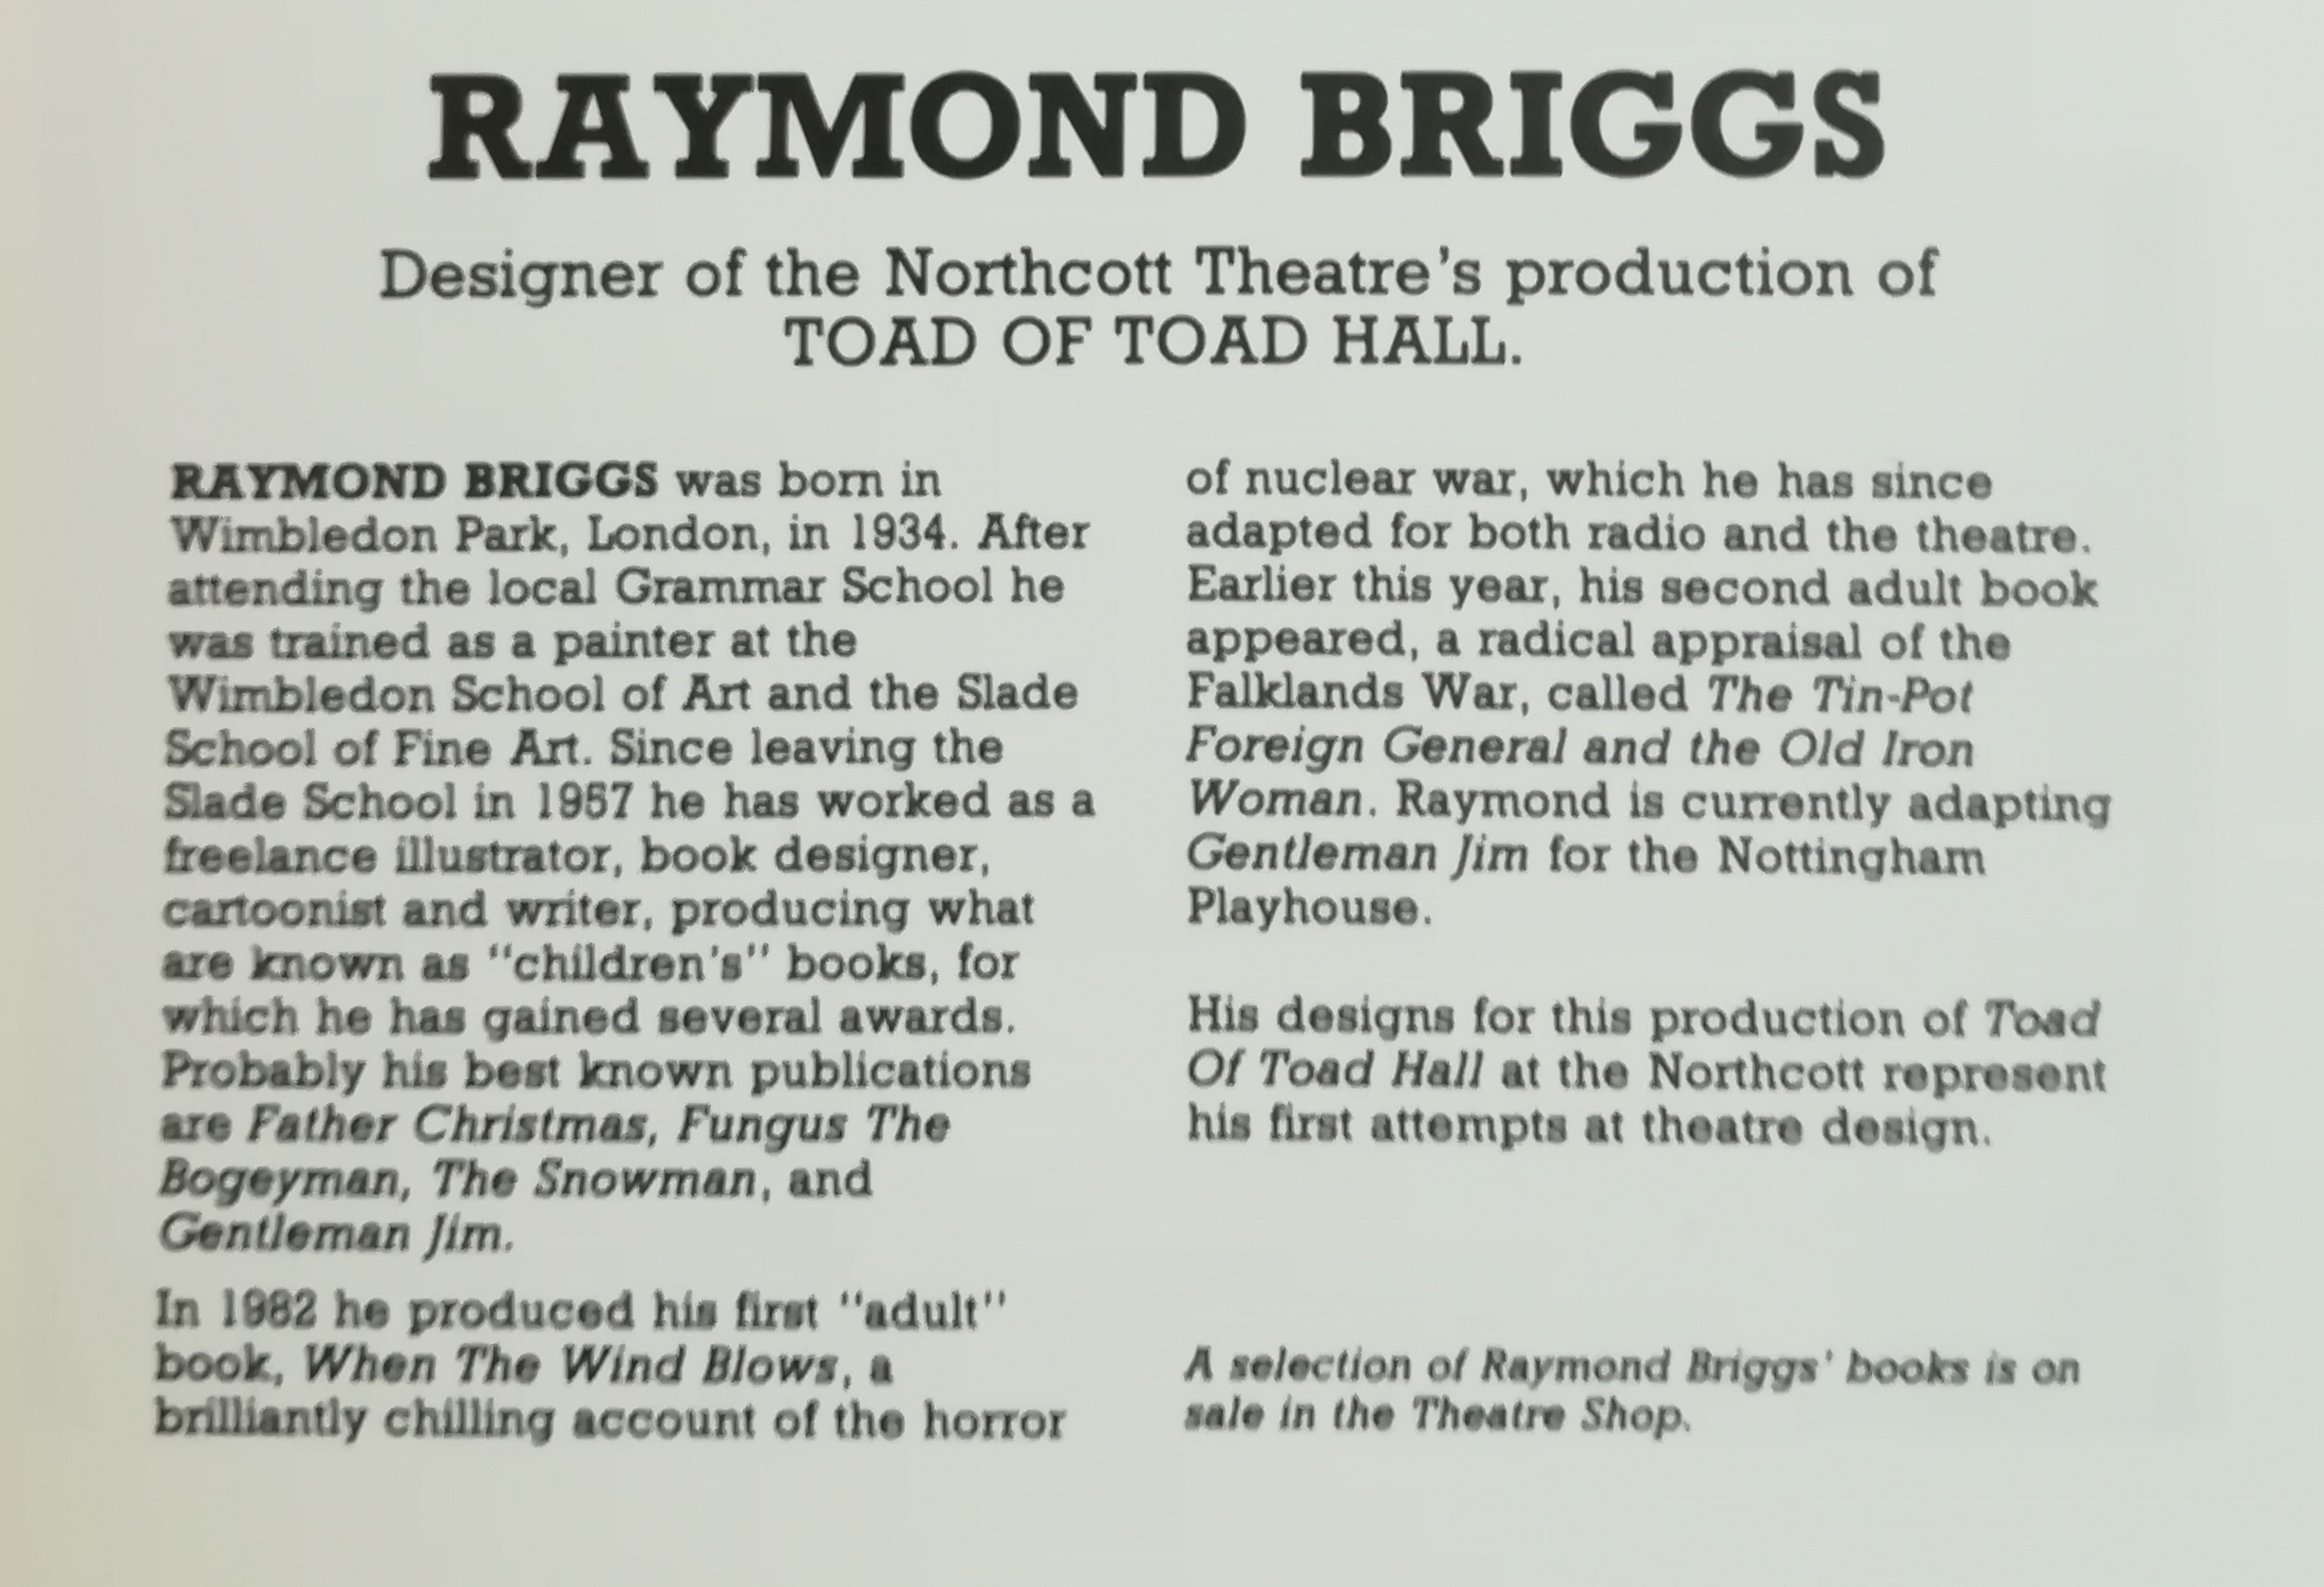 EUL MS 348 - Extract from a programme for Toad of Toad Hall (1984)